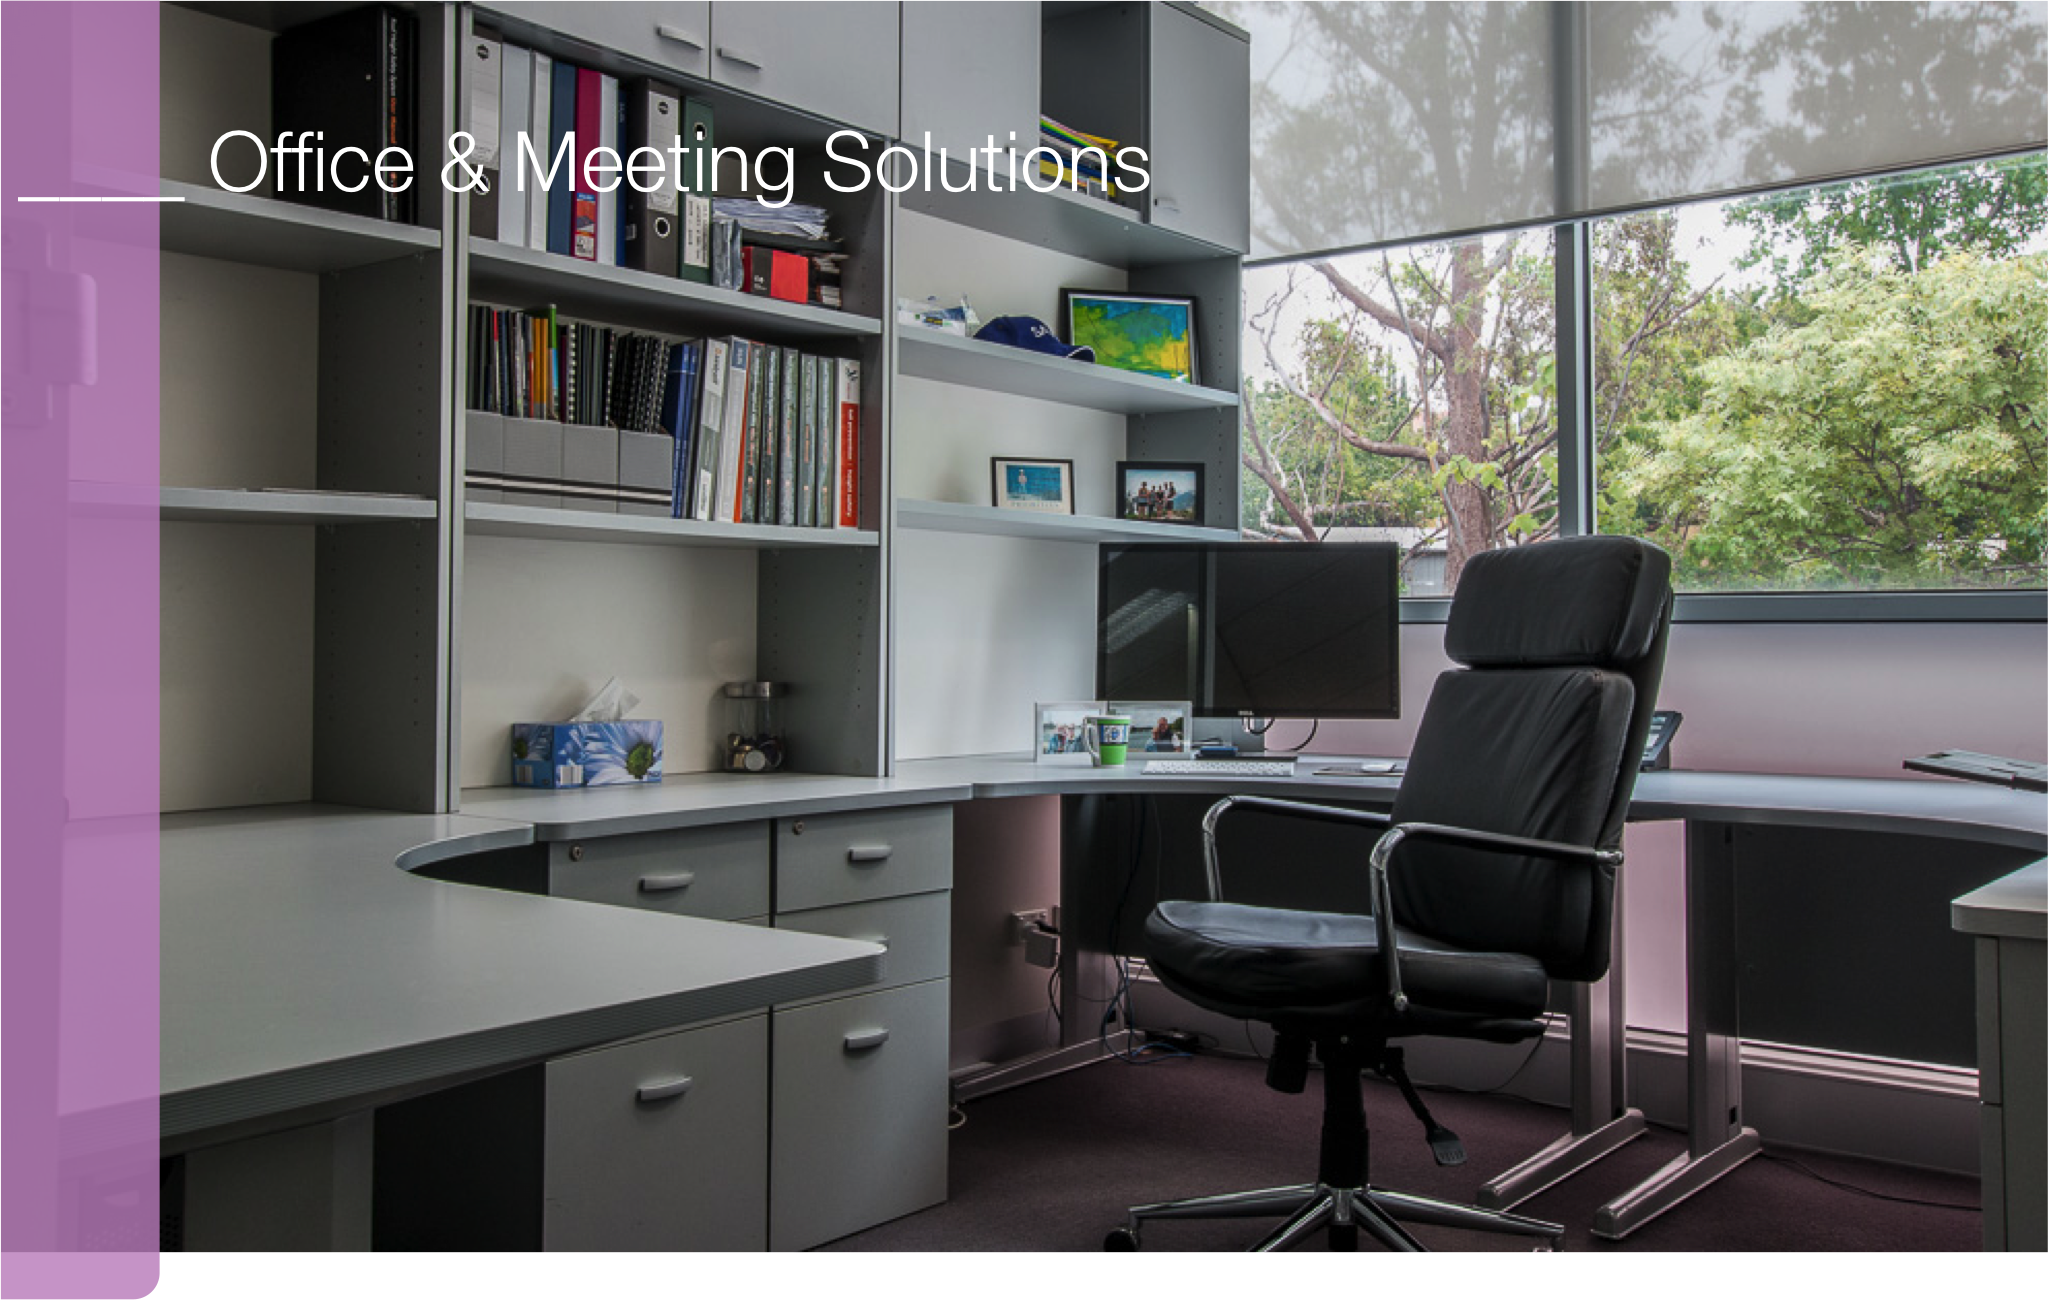 Rooms: Office & Meeting Solutions